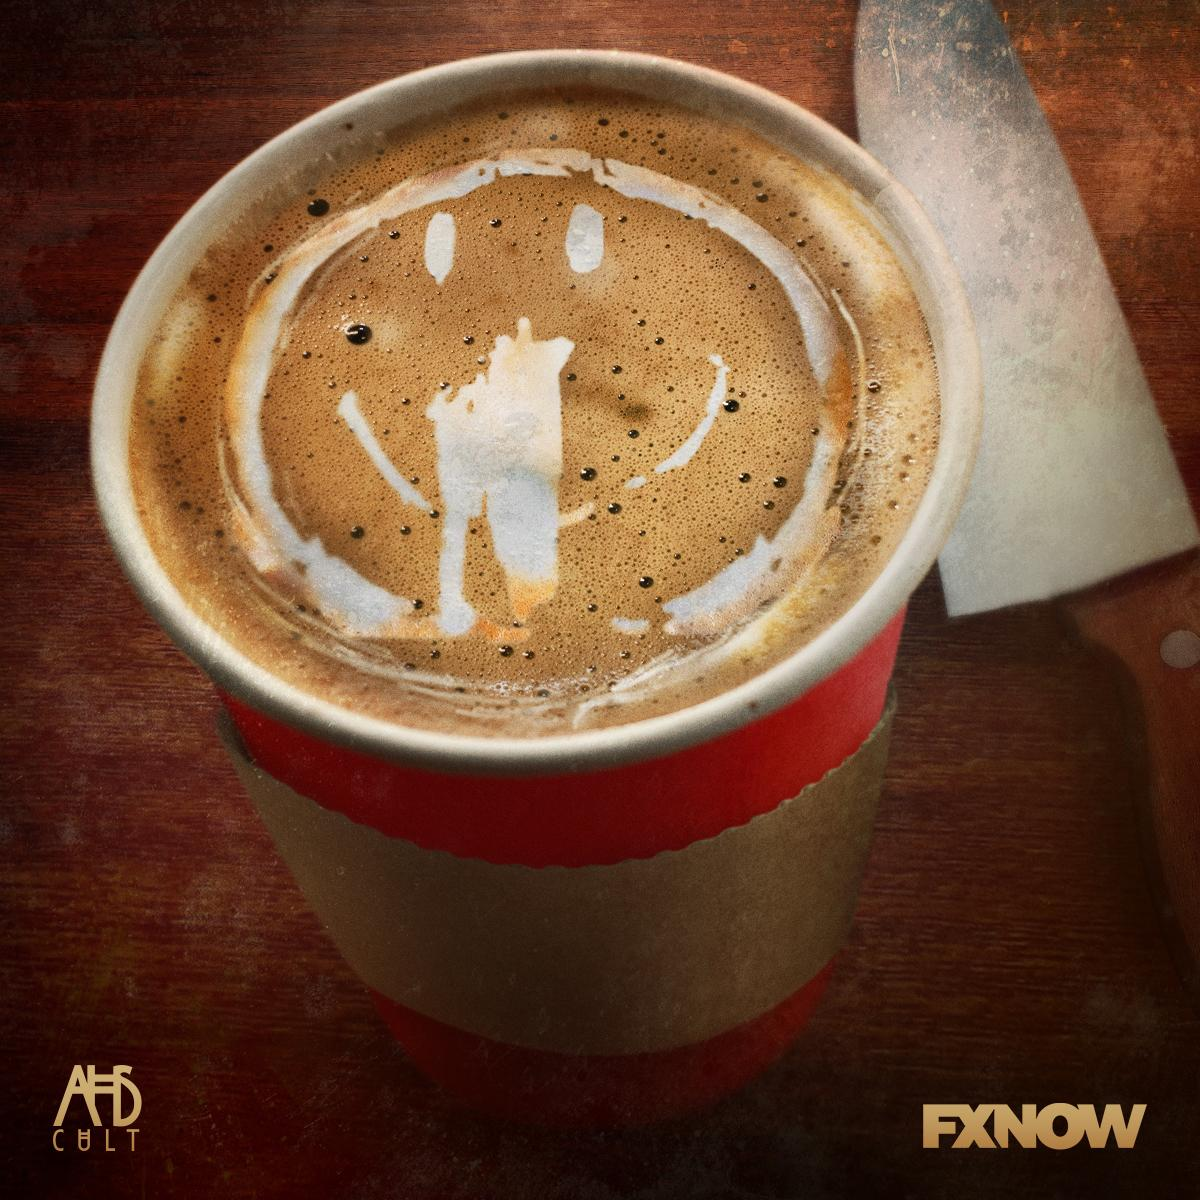 RT @AHSFX: Take a sip.  It's the best in town. #AHSCult https://t.co/txhmRAuZMt